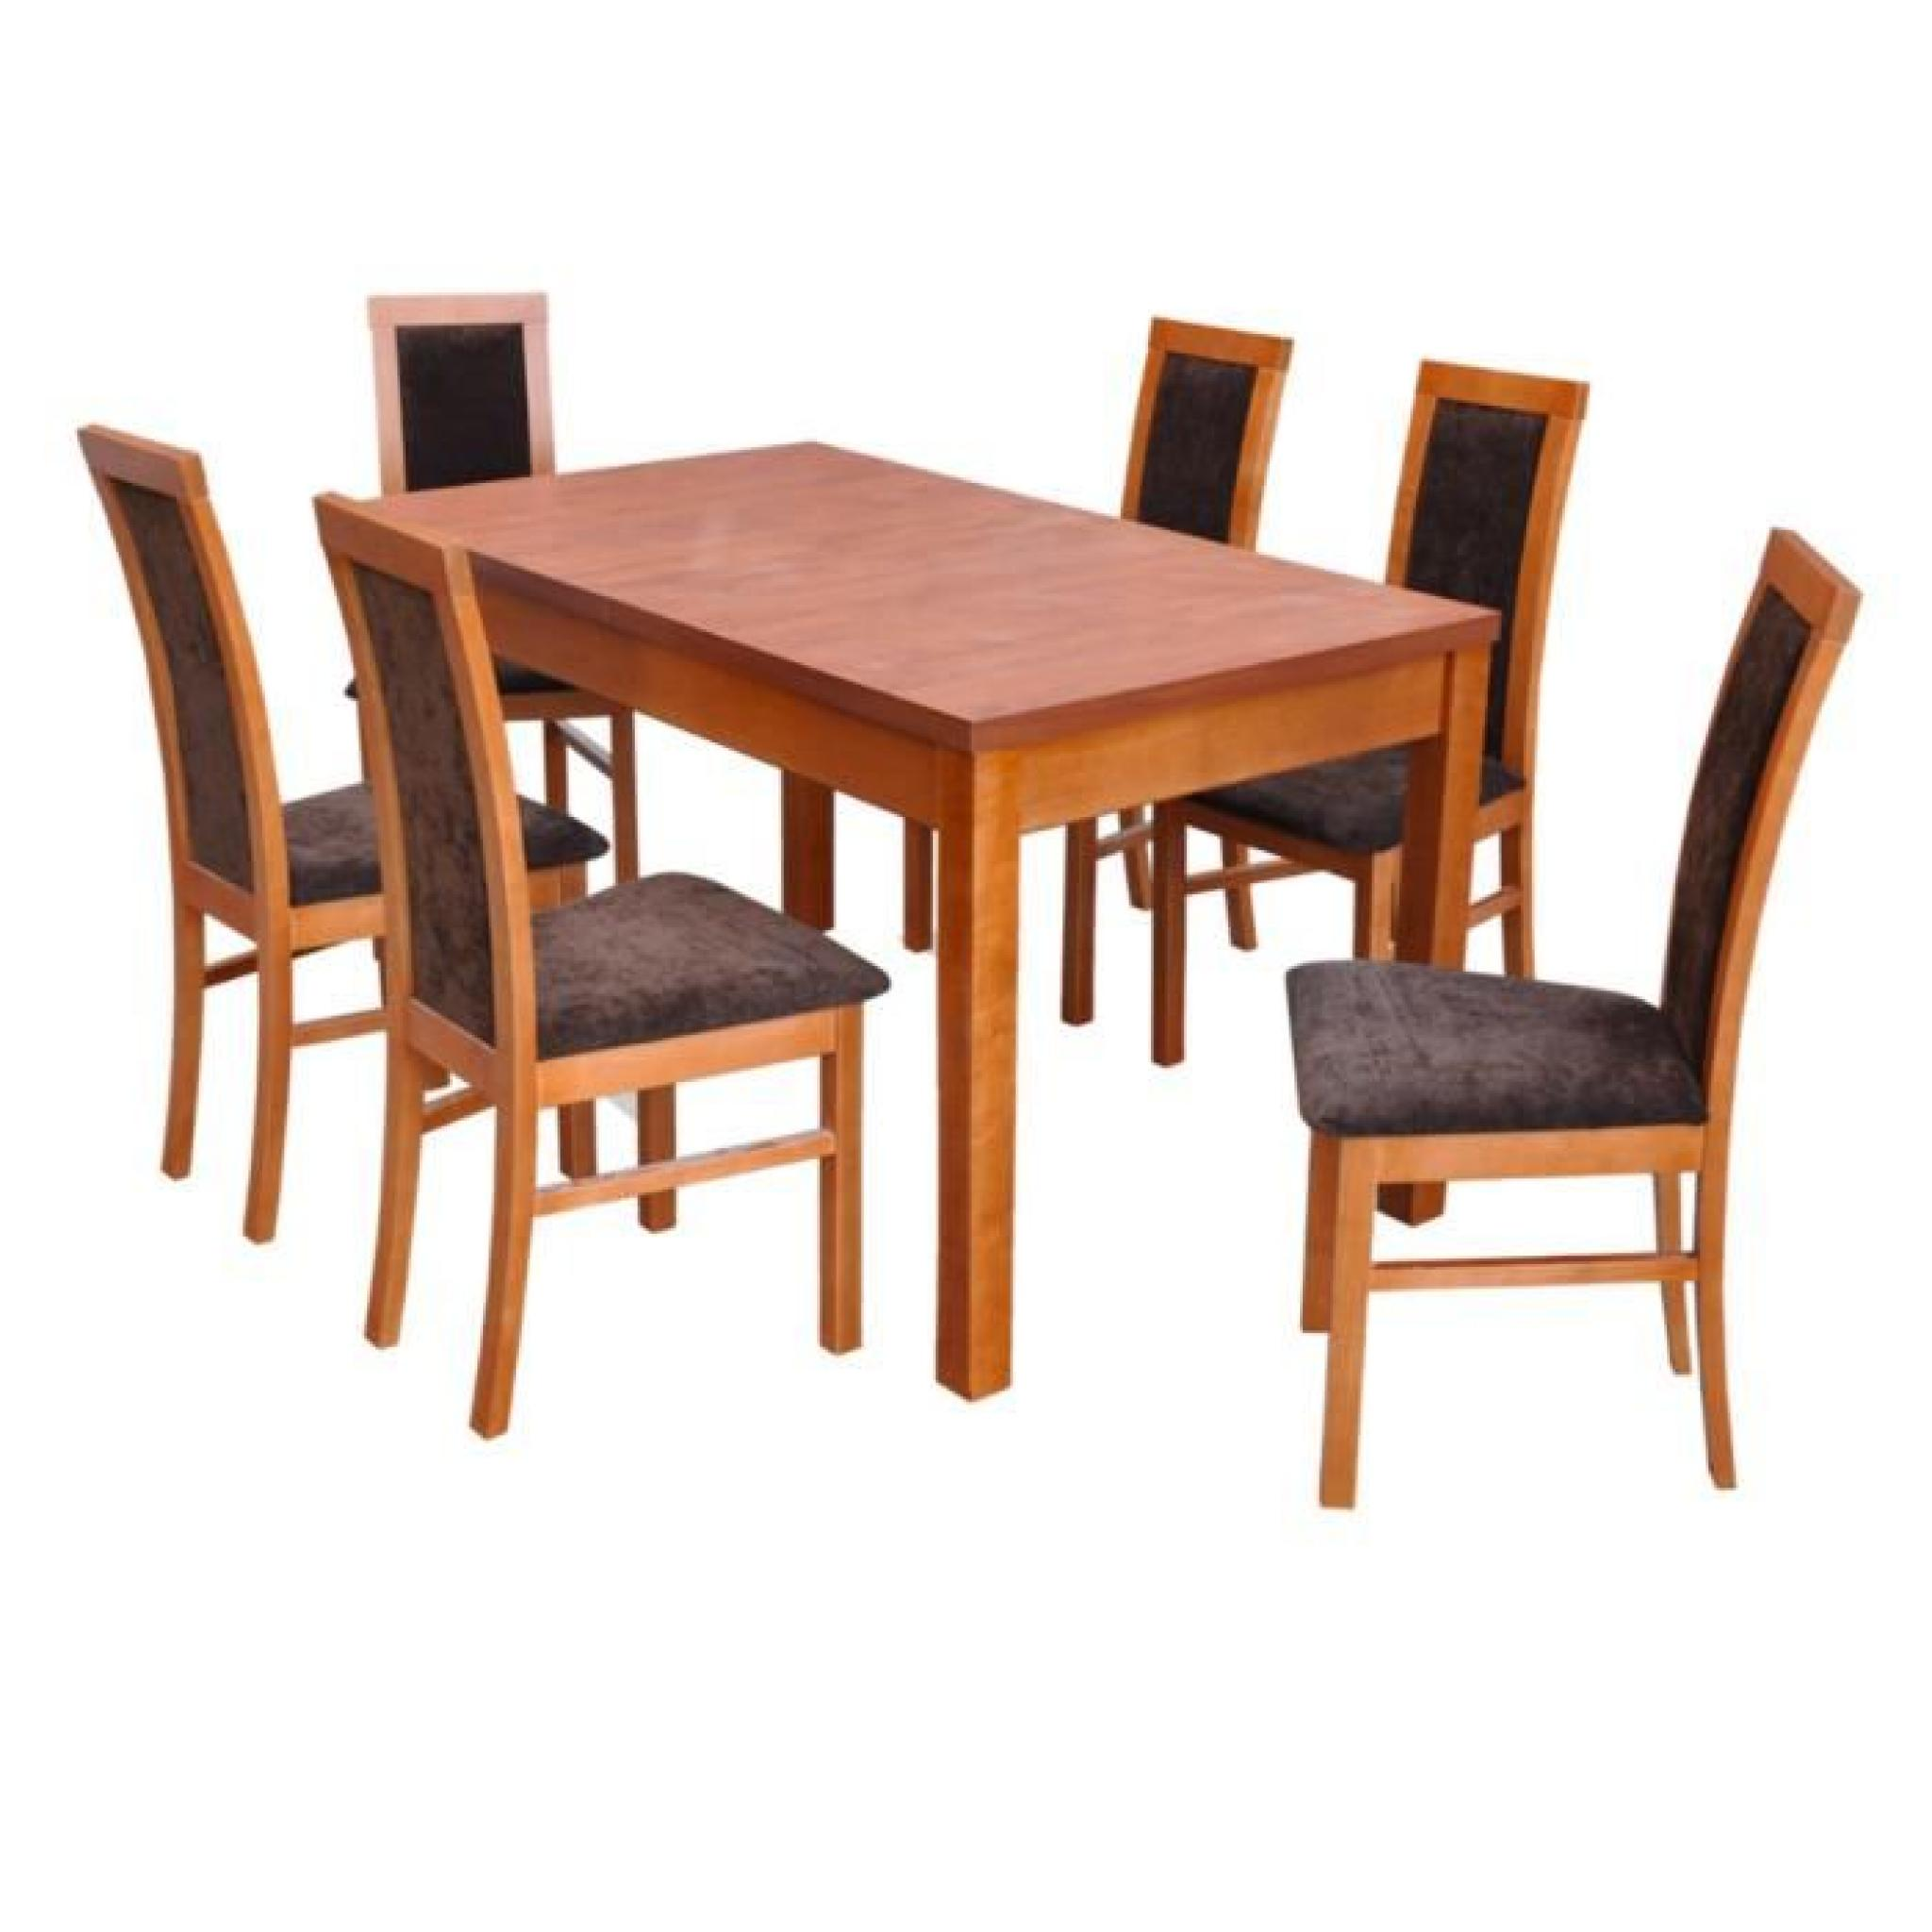 Ensemble table extensible et 6 chaises tablewood estrella for Ensemble table et 6 chaise salle a manger